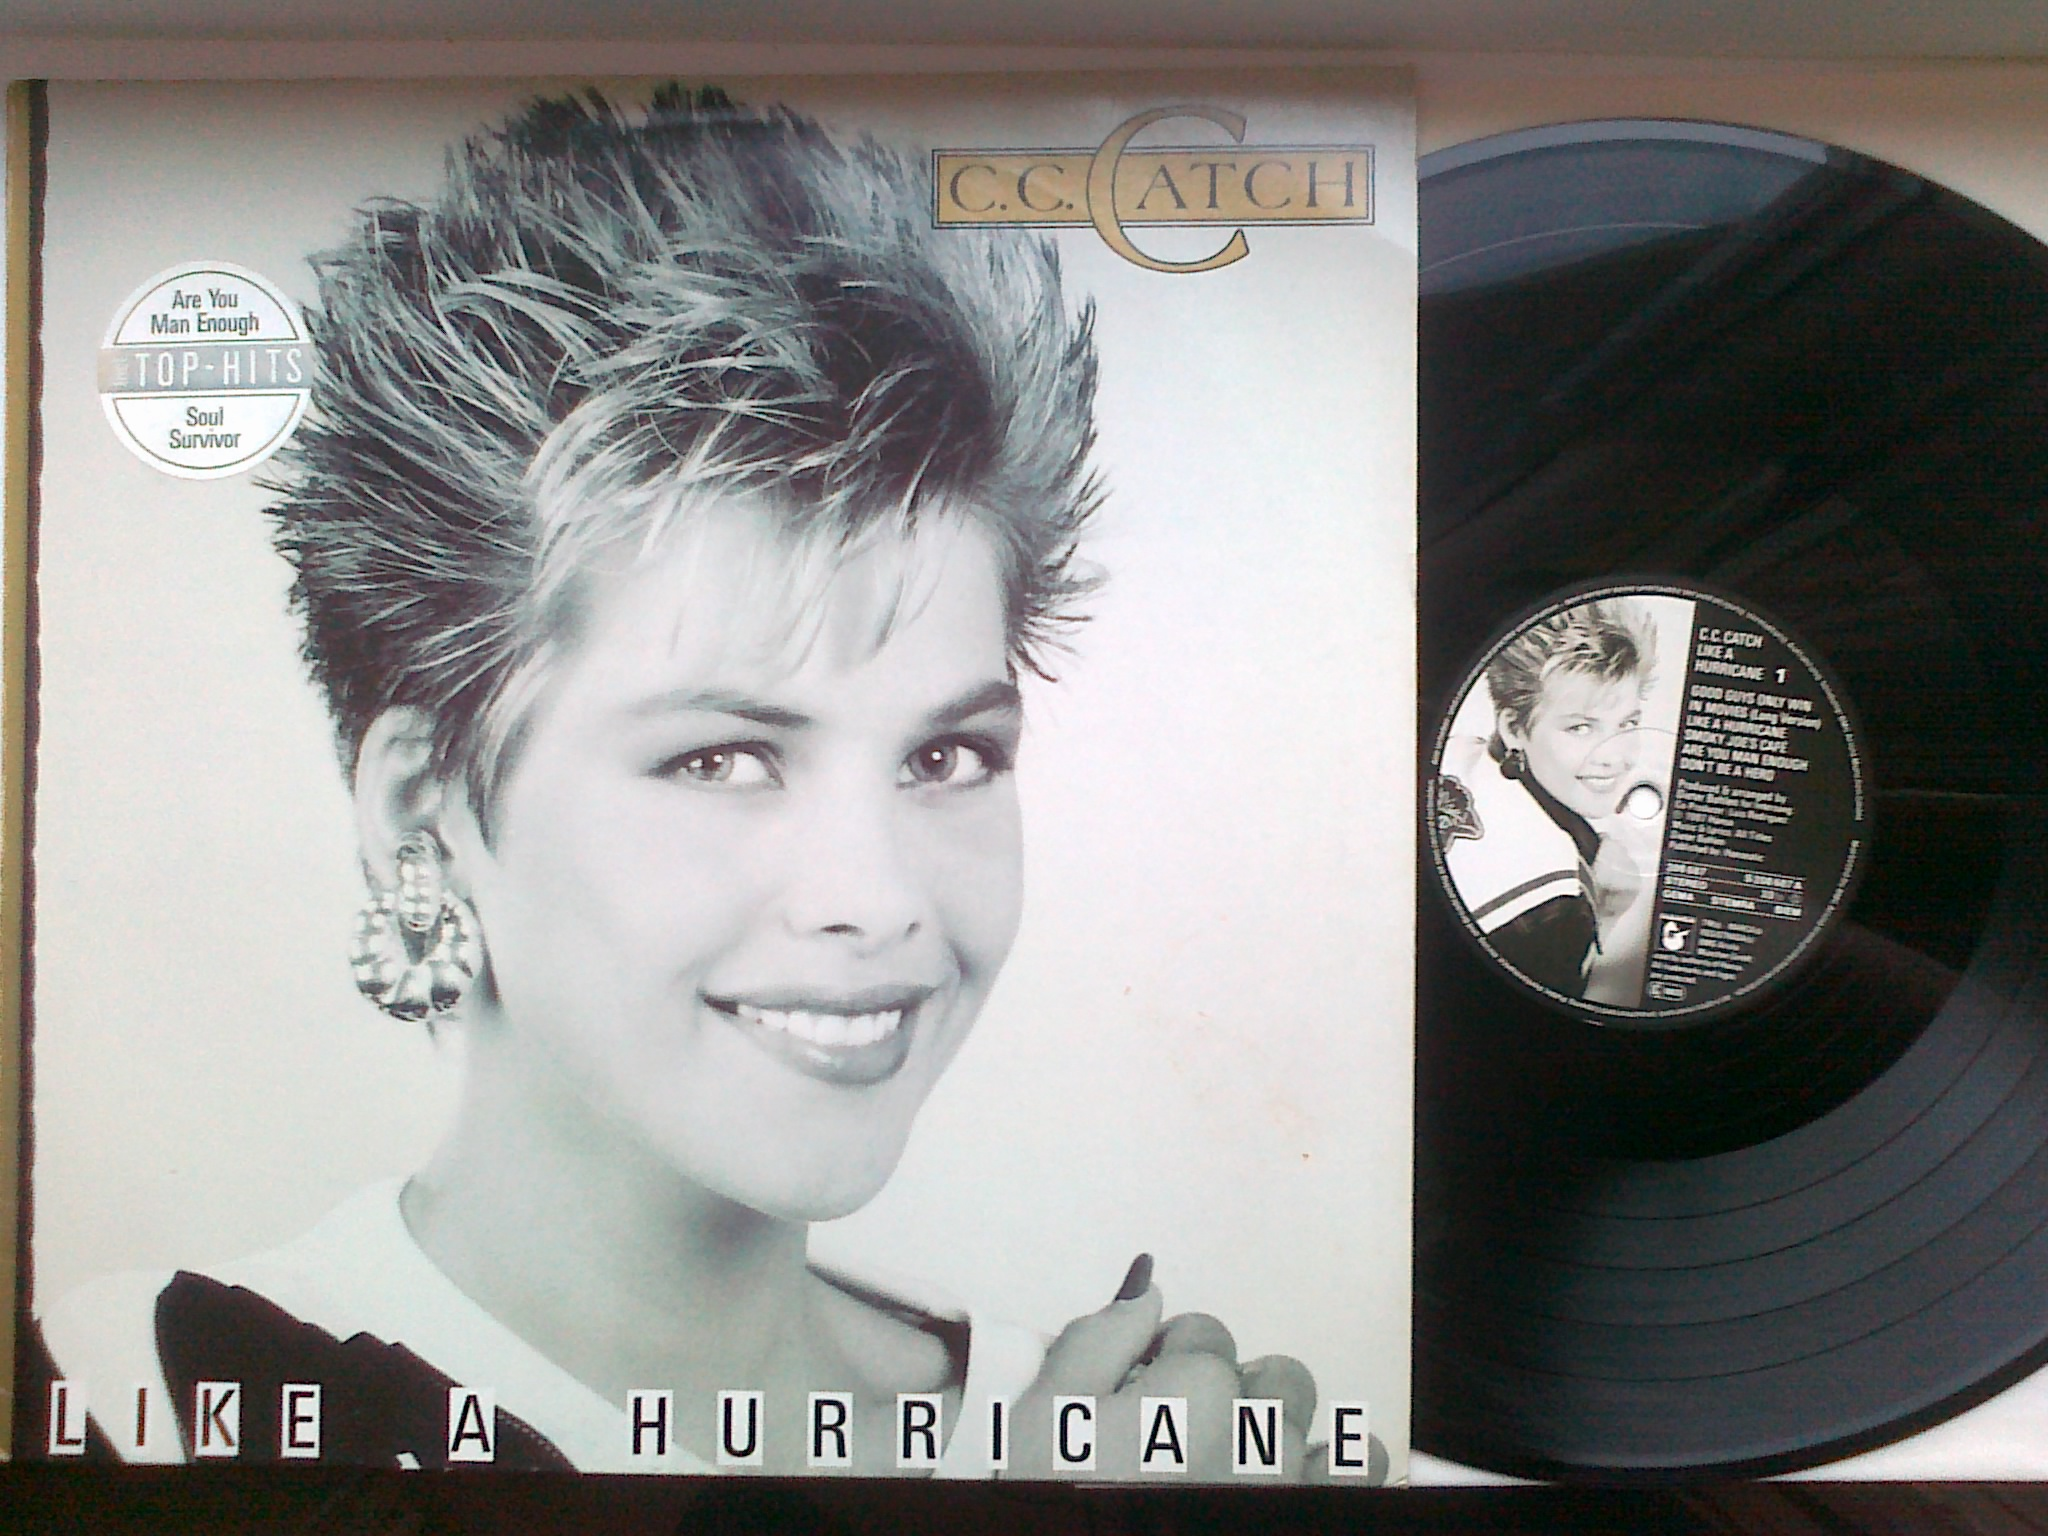 C. C. Catch - Like A Hurricane